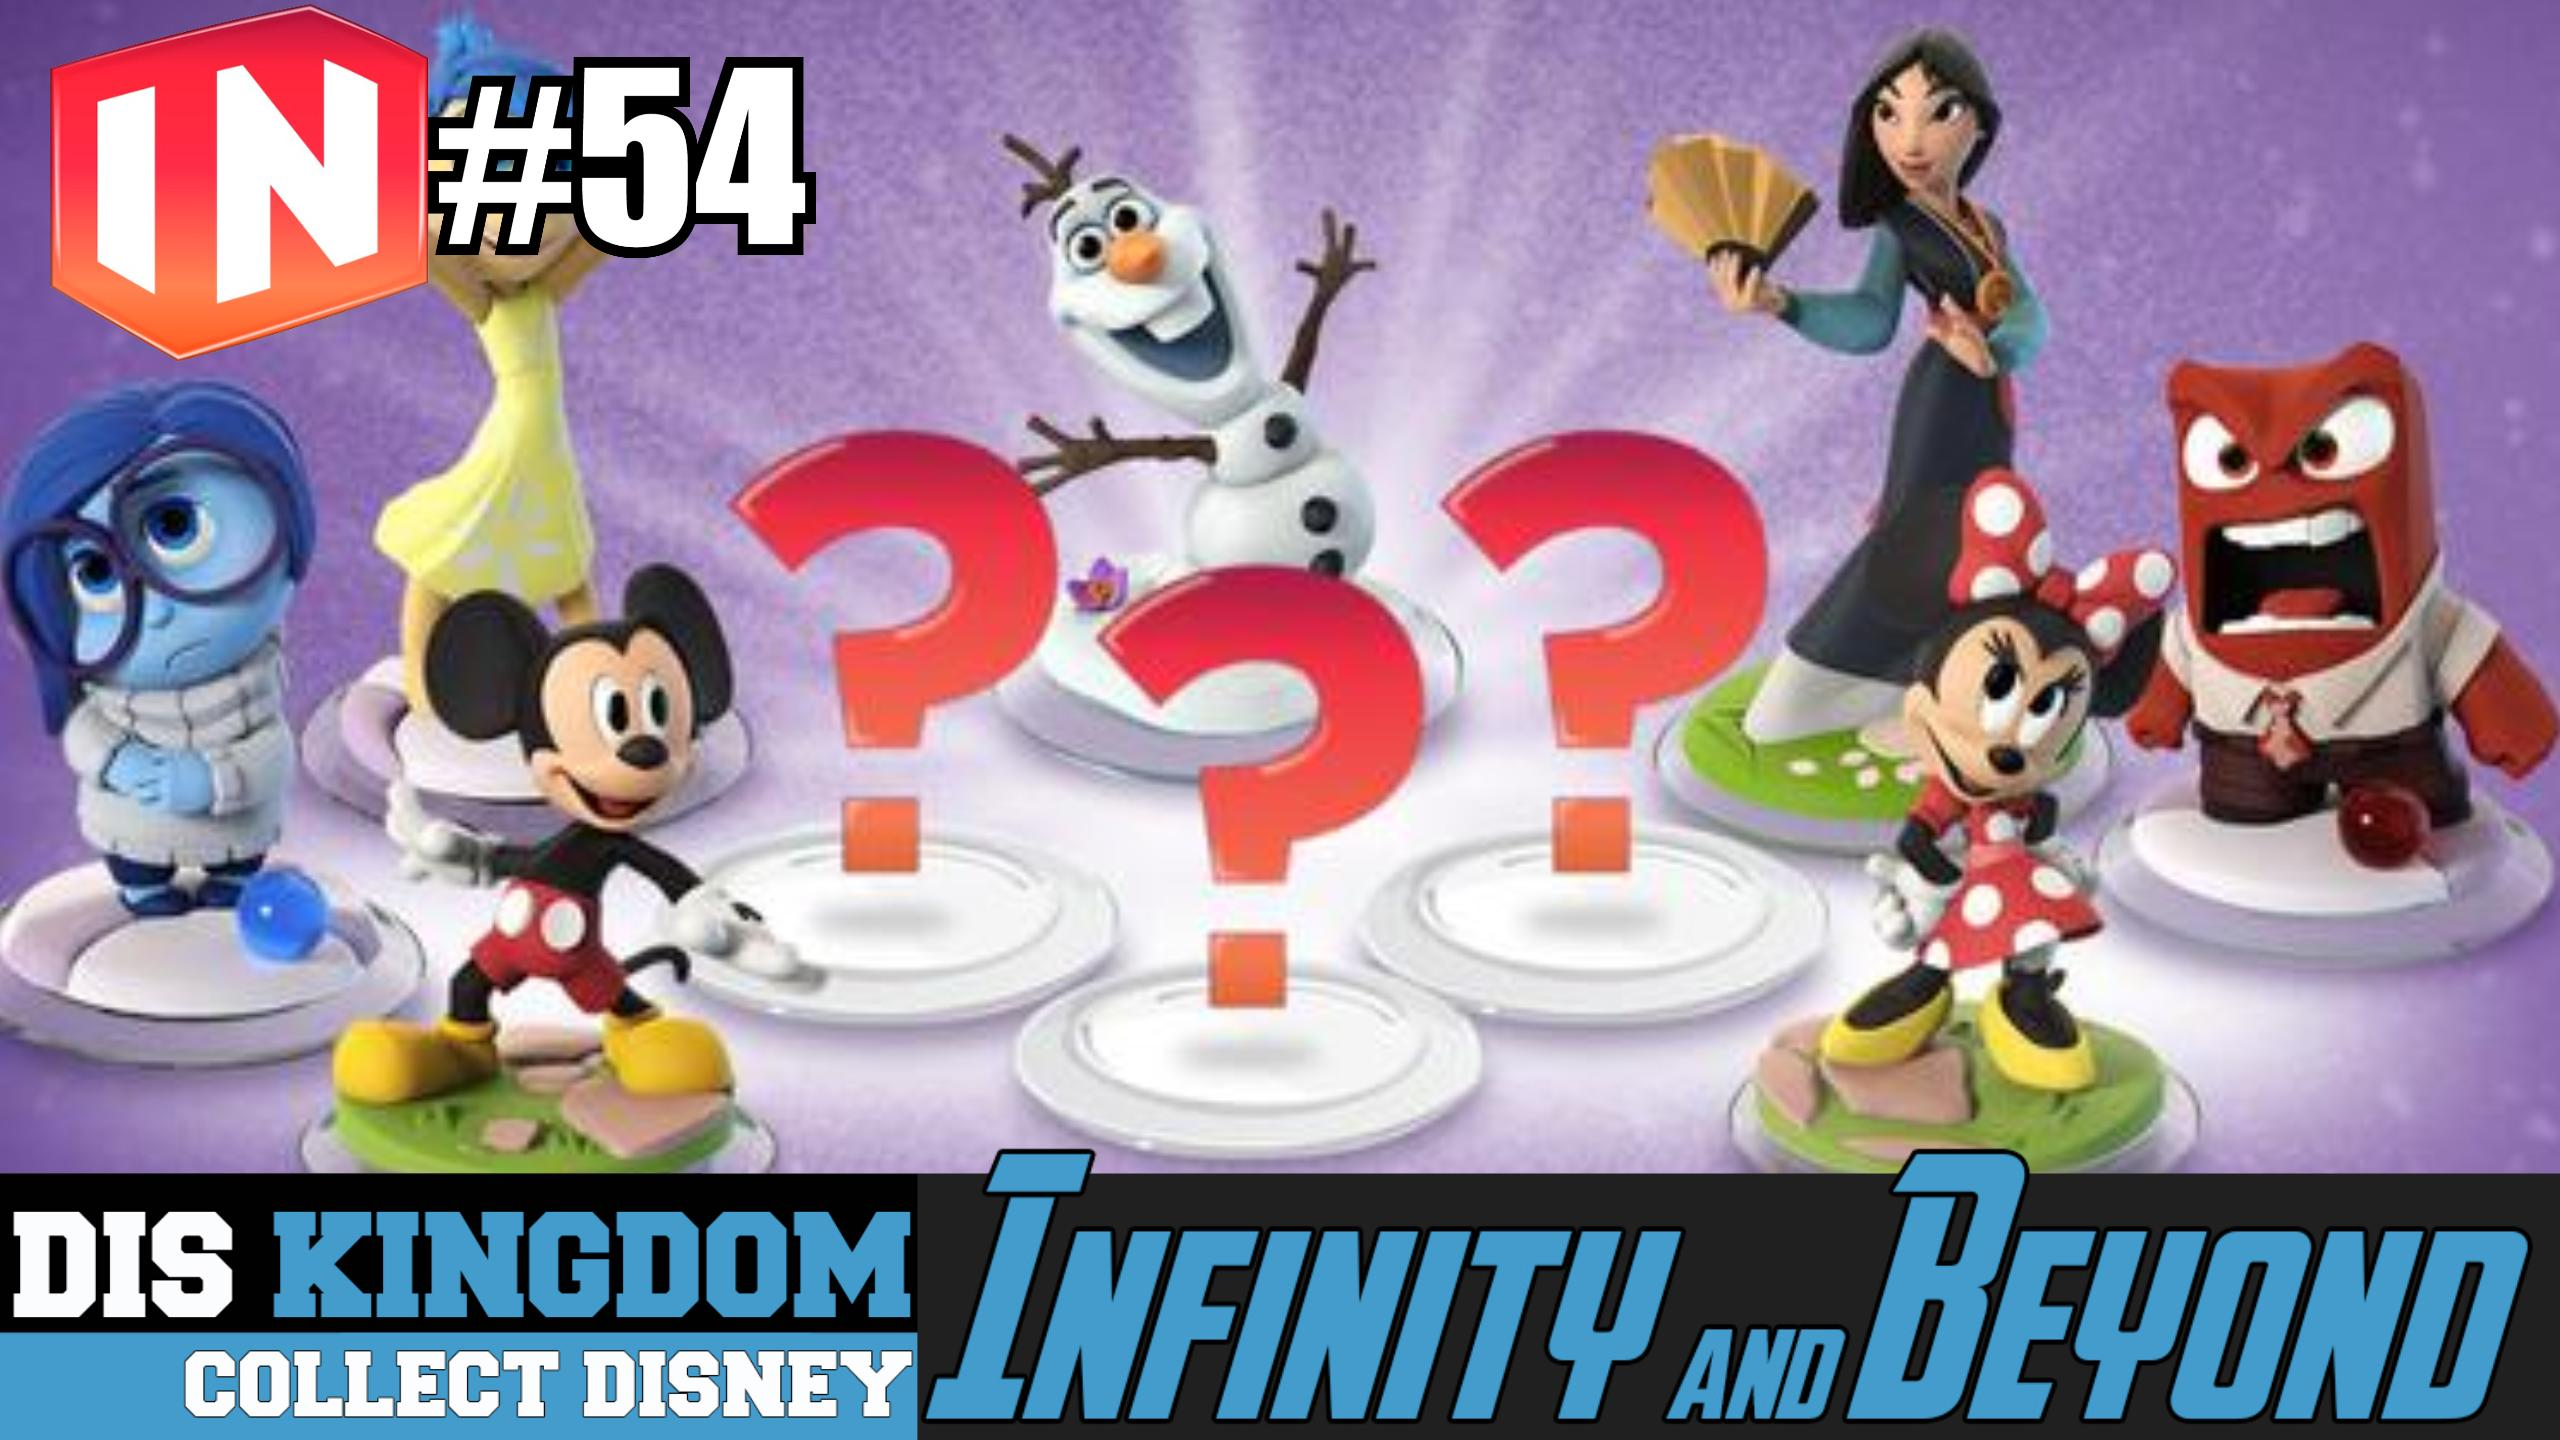 Disney Infinity 3.0 & Beyond #54 – D23 Expo, 3 New Characters & More